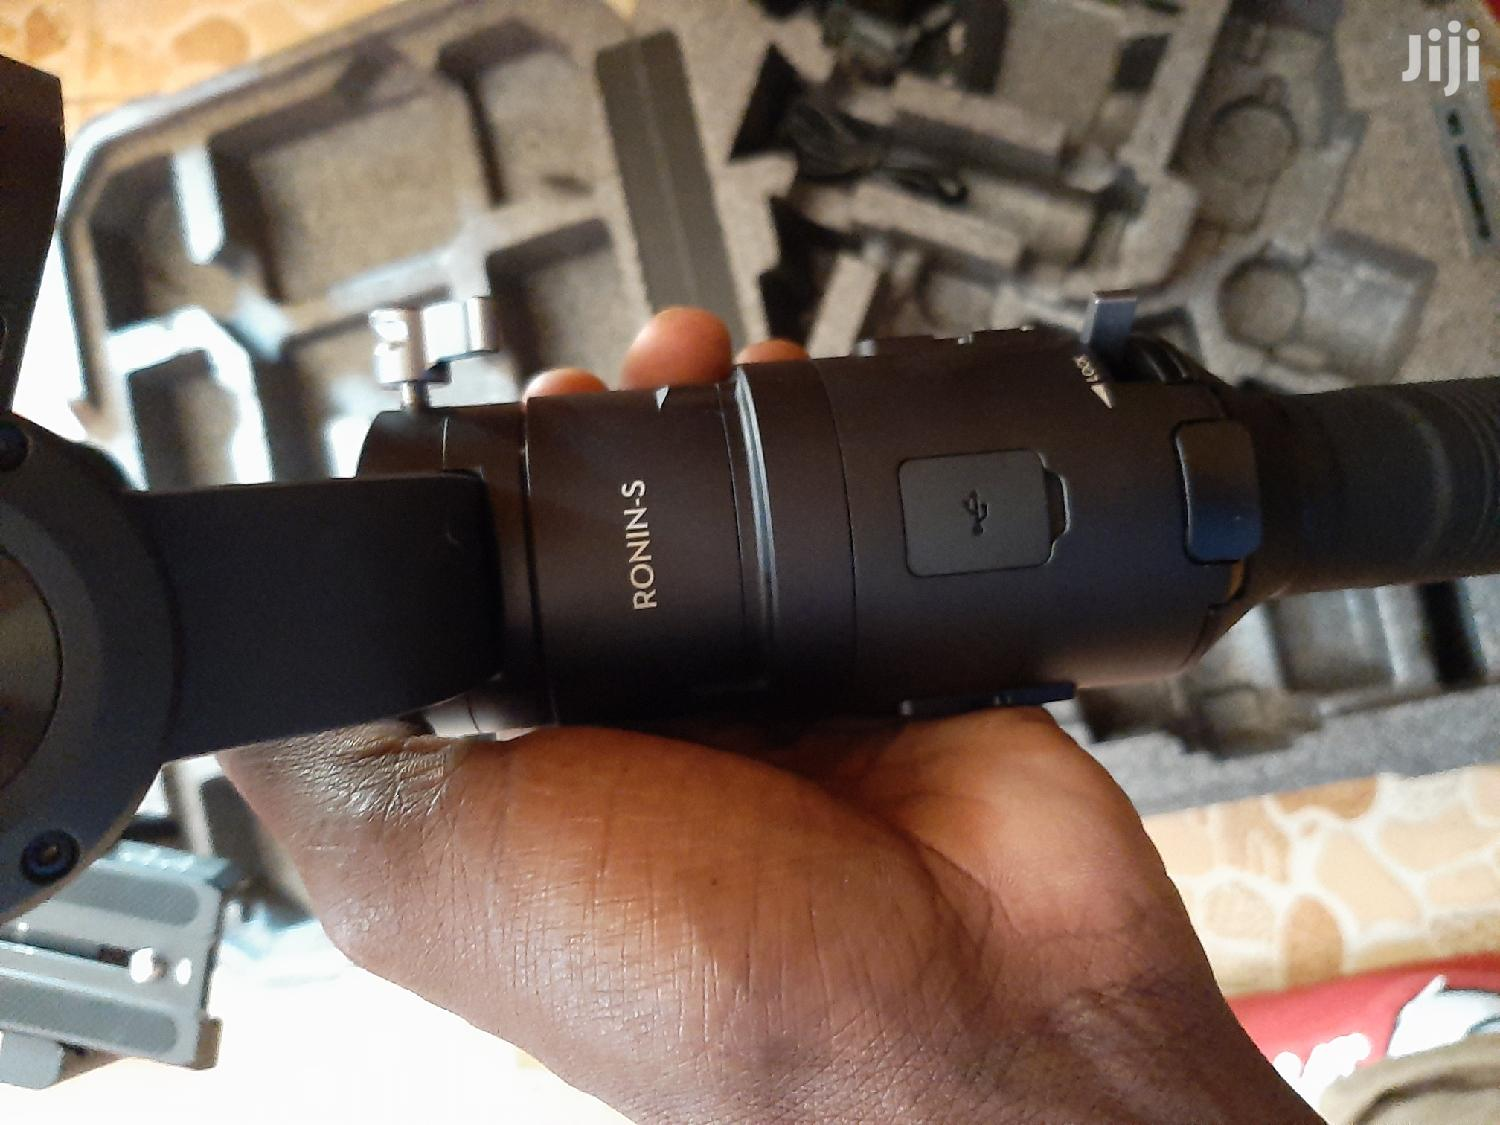 Ronin S Gimbal Stabilizer for Hire. | Accessories & Supplies for Electronics for sale in Kahawa West, Nairobi, Kenya